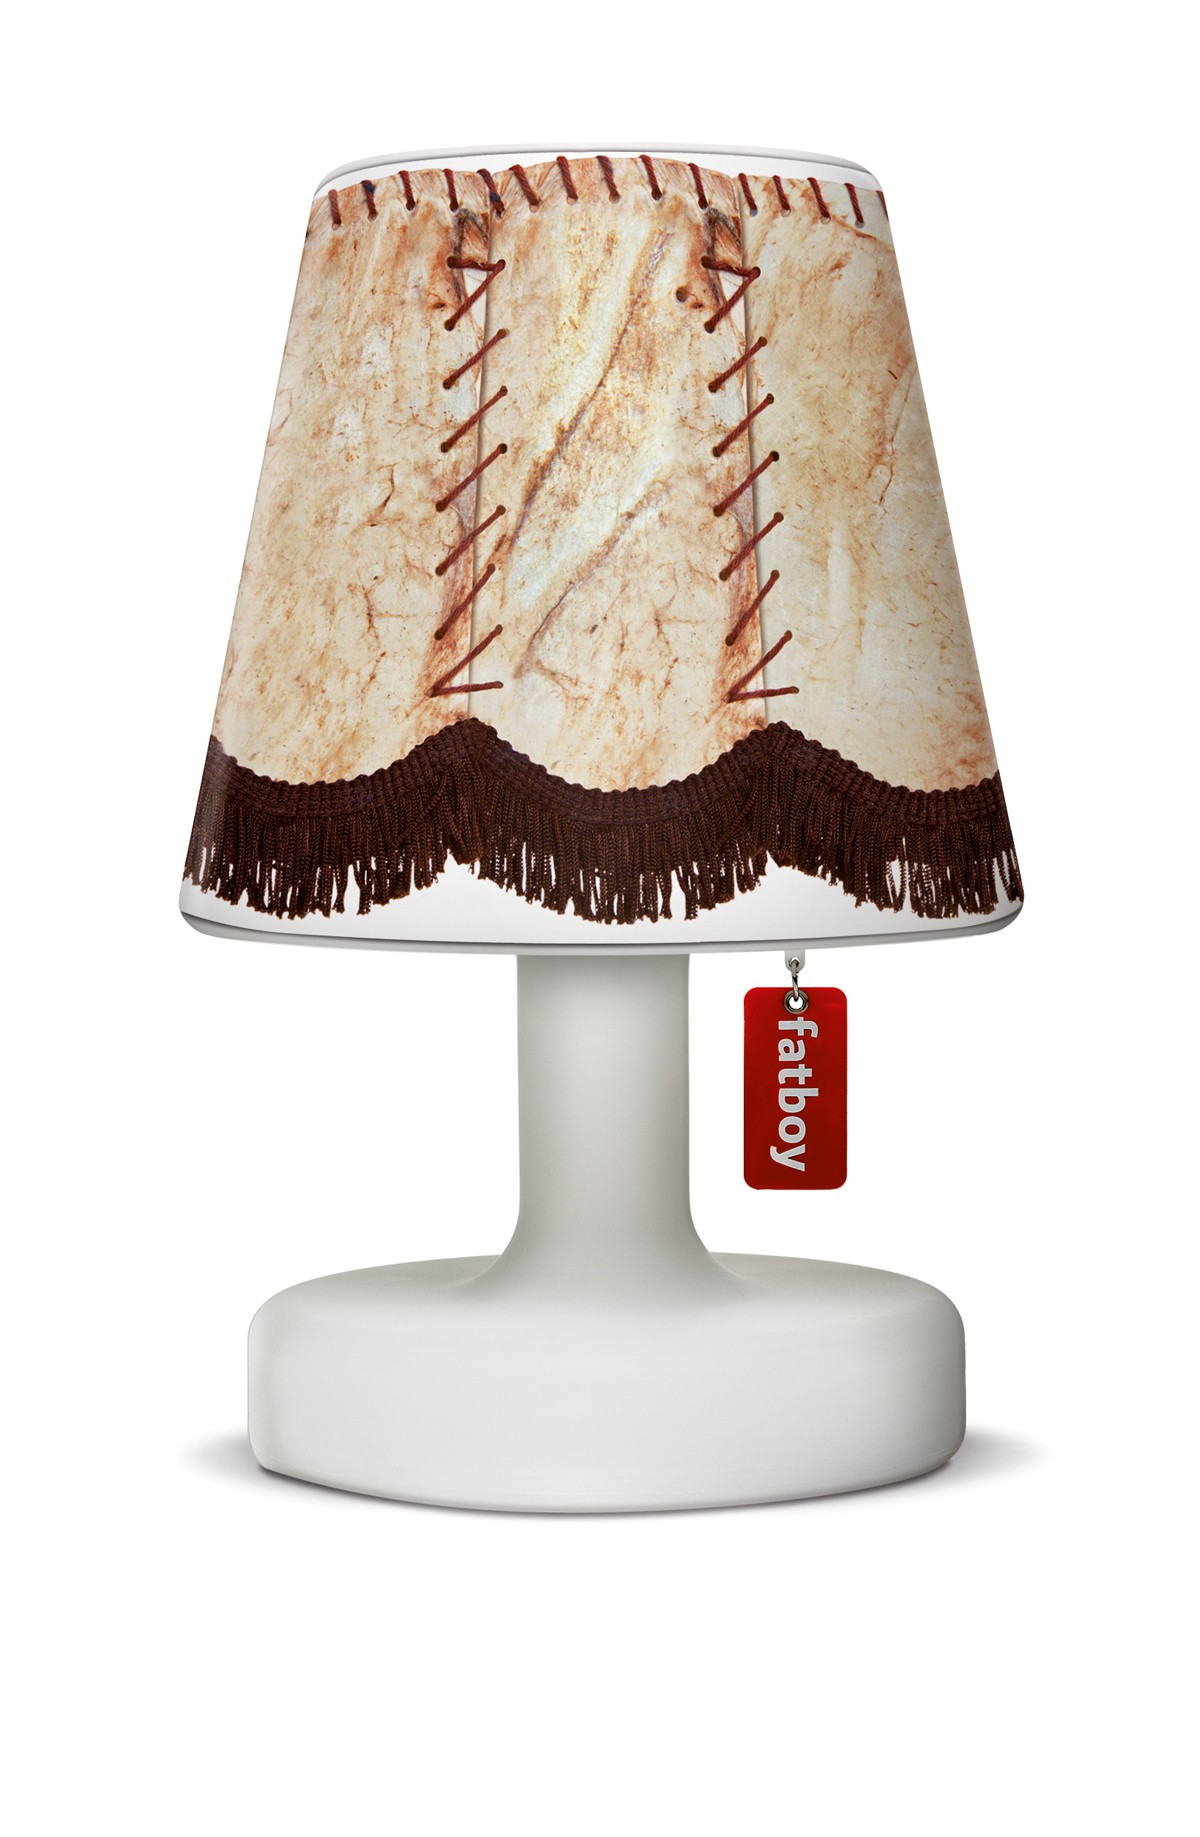 Fatboy Lampe Lampe Edison Perfect Create Your Own Custom Small Live Edge Wood